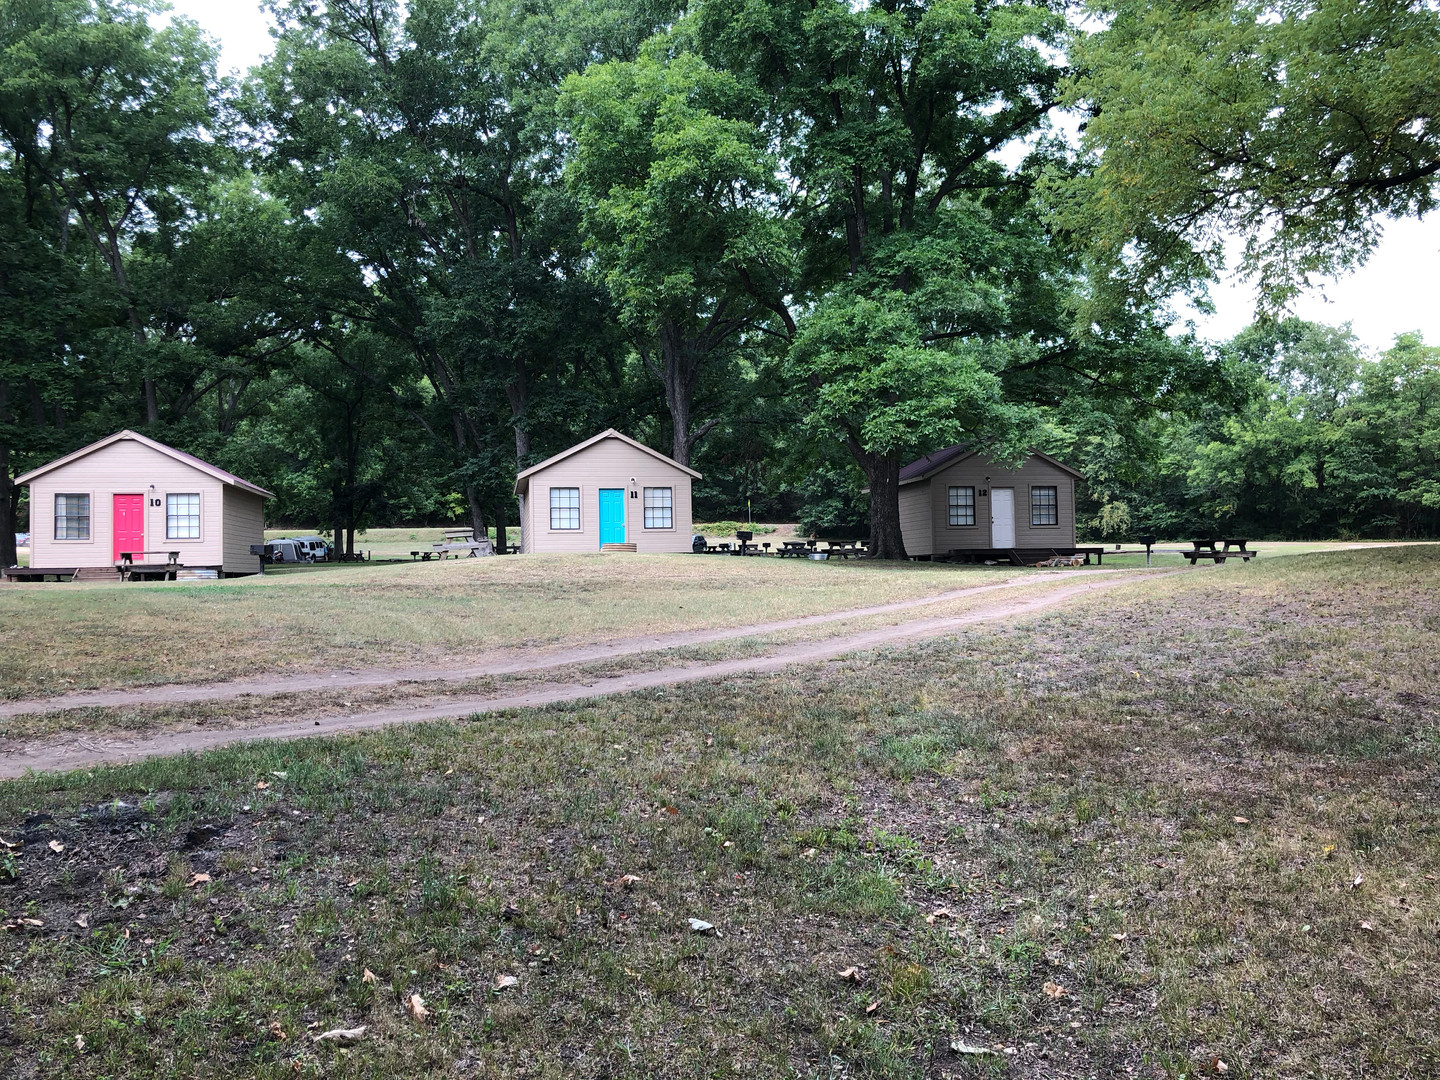 Cabins 10, 11, and 12.